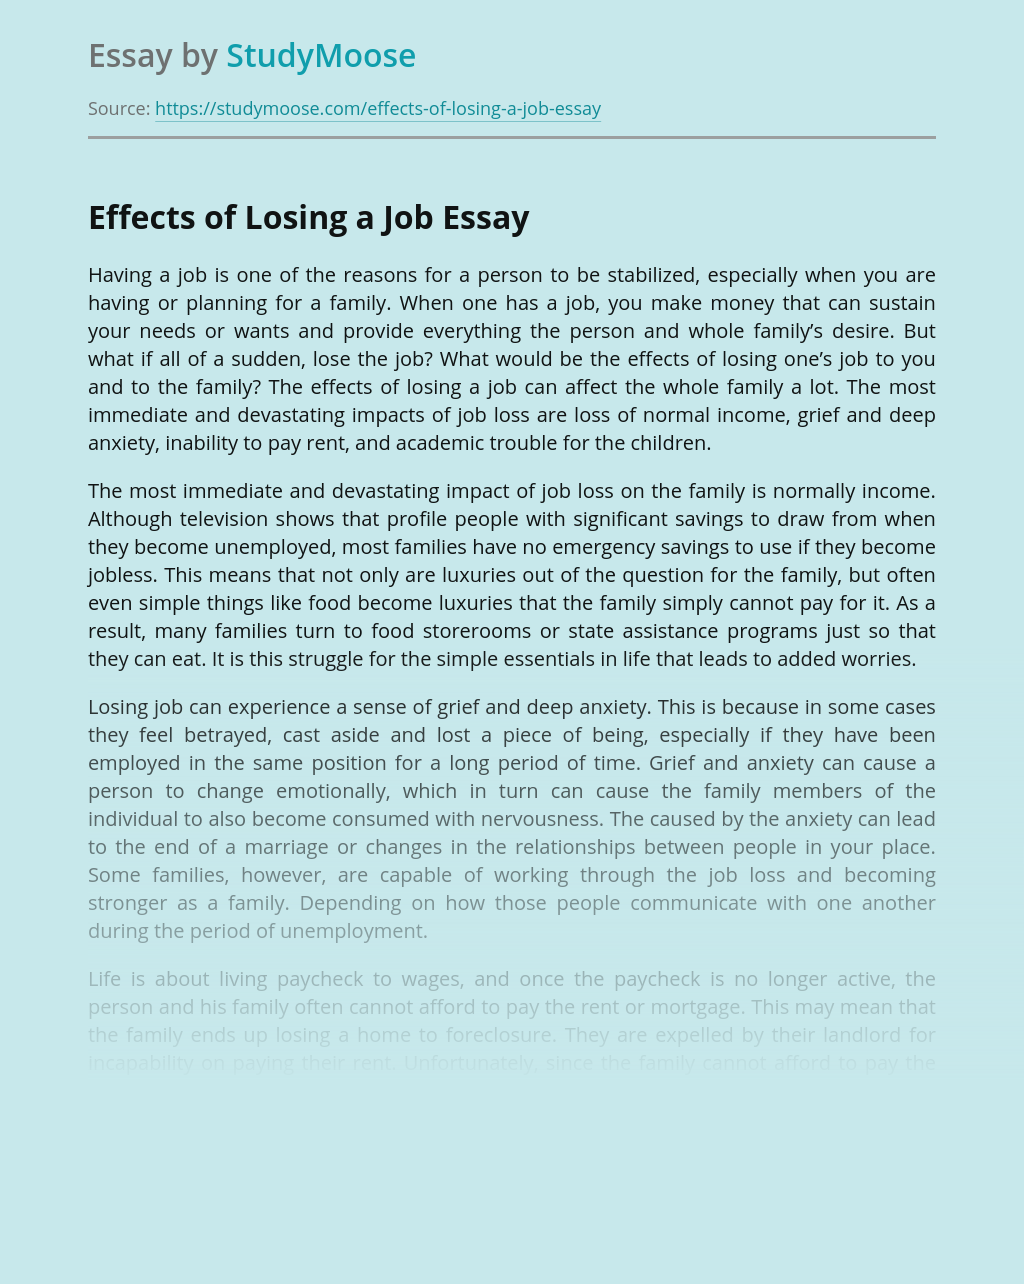 Effects of Losing a Job